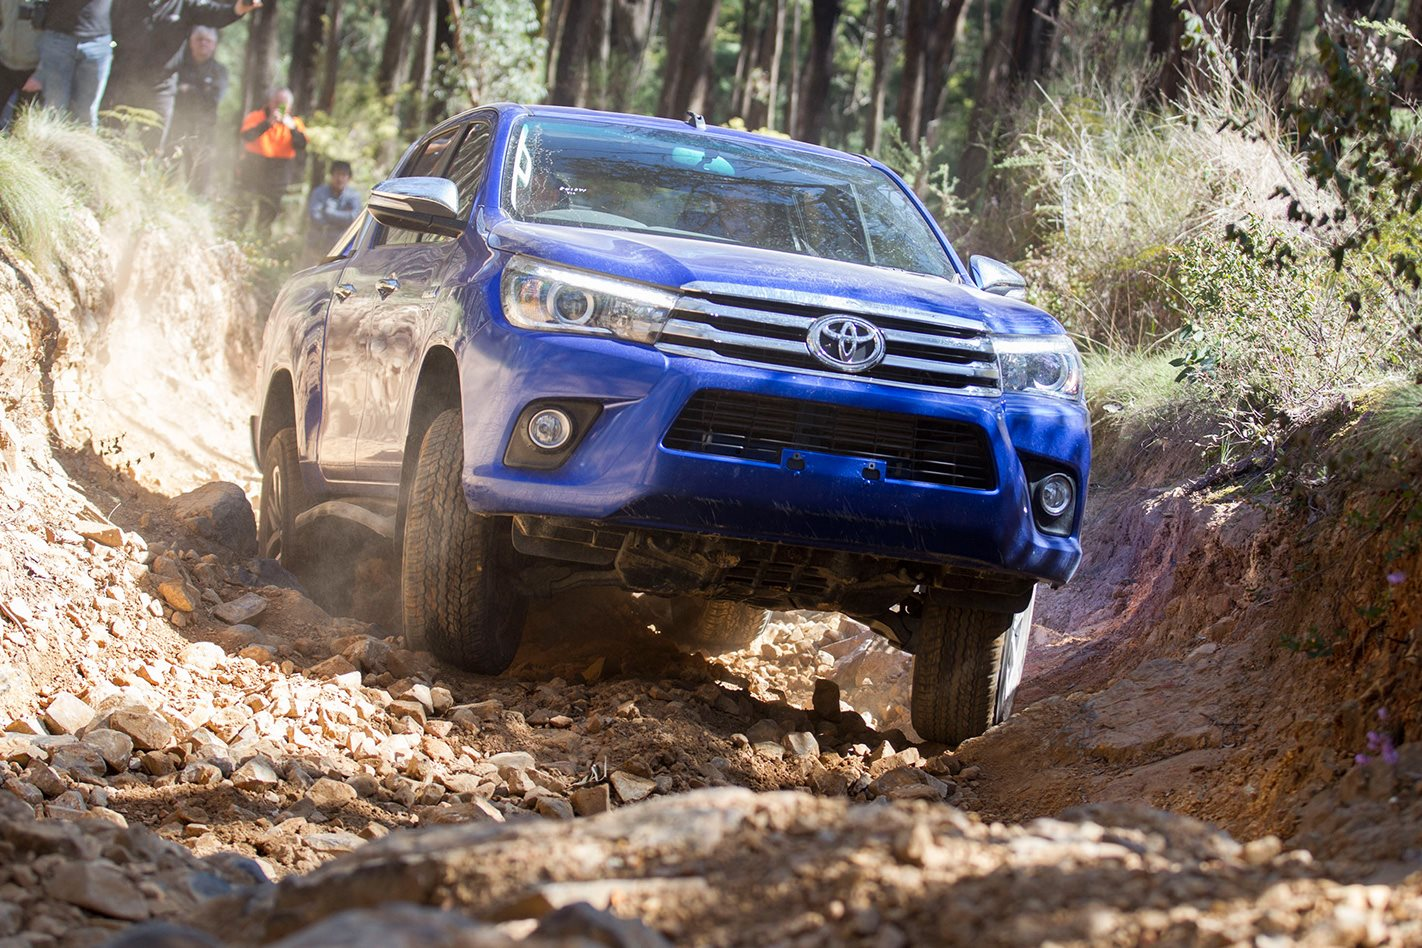 2016 Toyota Hilux Off Road Review 4x4 Australia